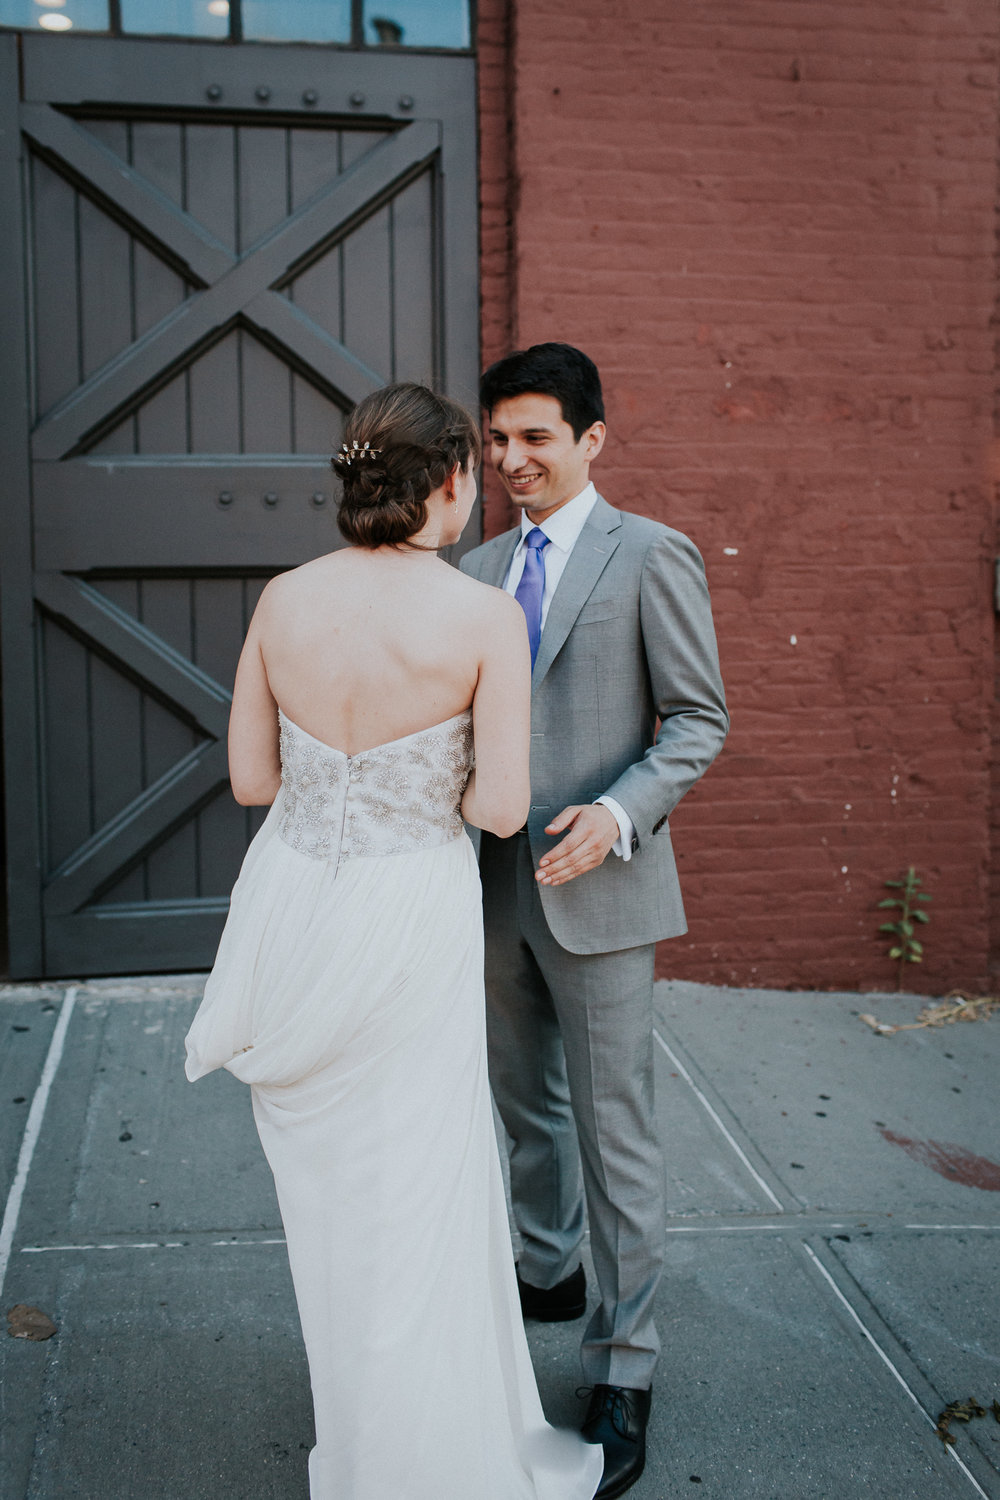 Dinosaur-Inspired-Brooklyn-Wedding-26-Bridge-New-York-Documentary-Wedding-Photographer-12.jpg